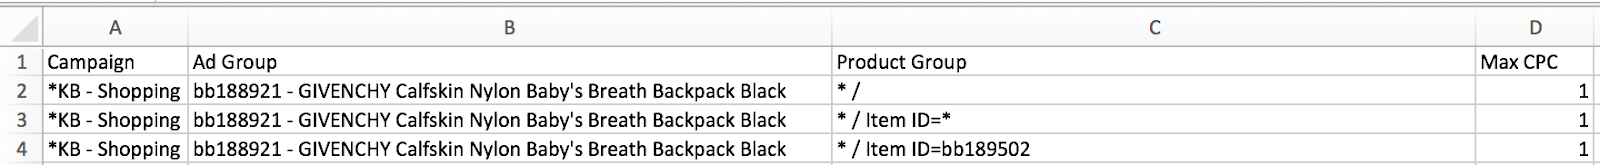 single product ad groups product groups